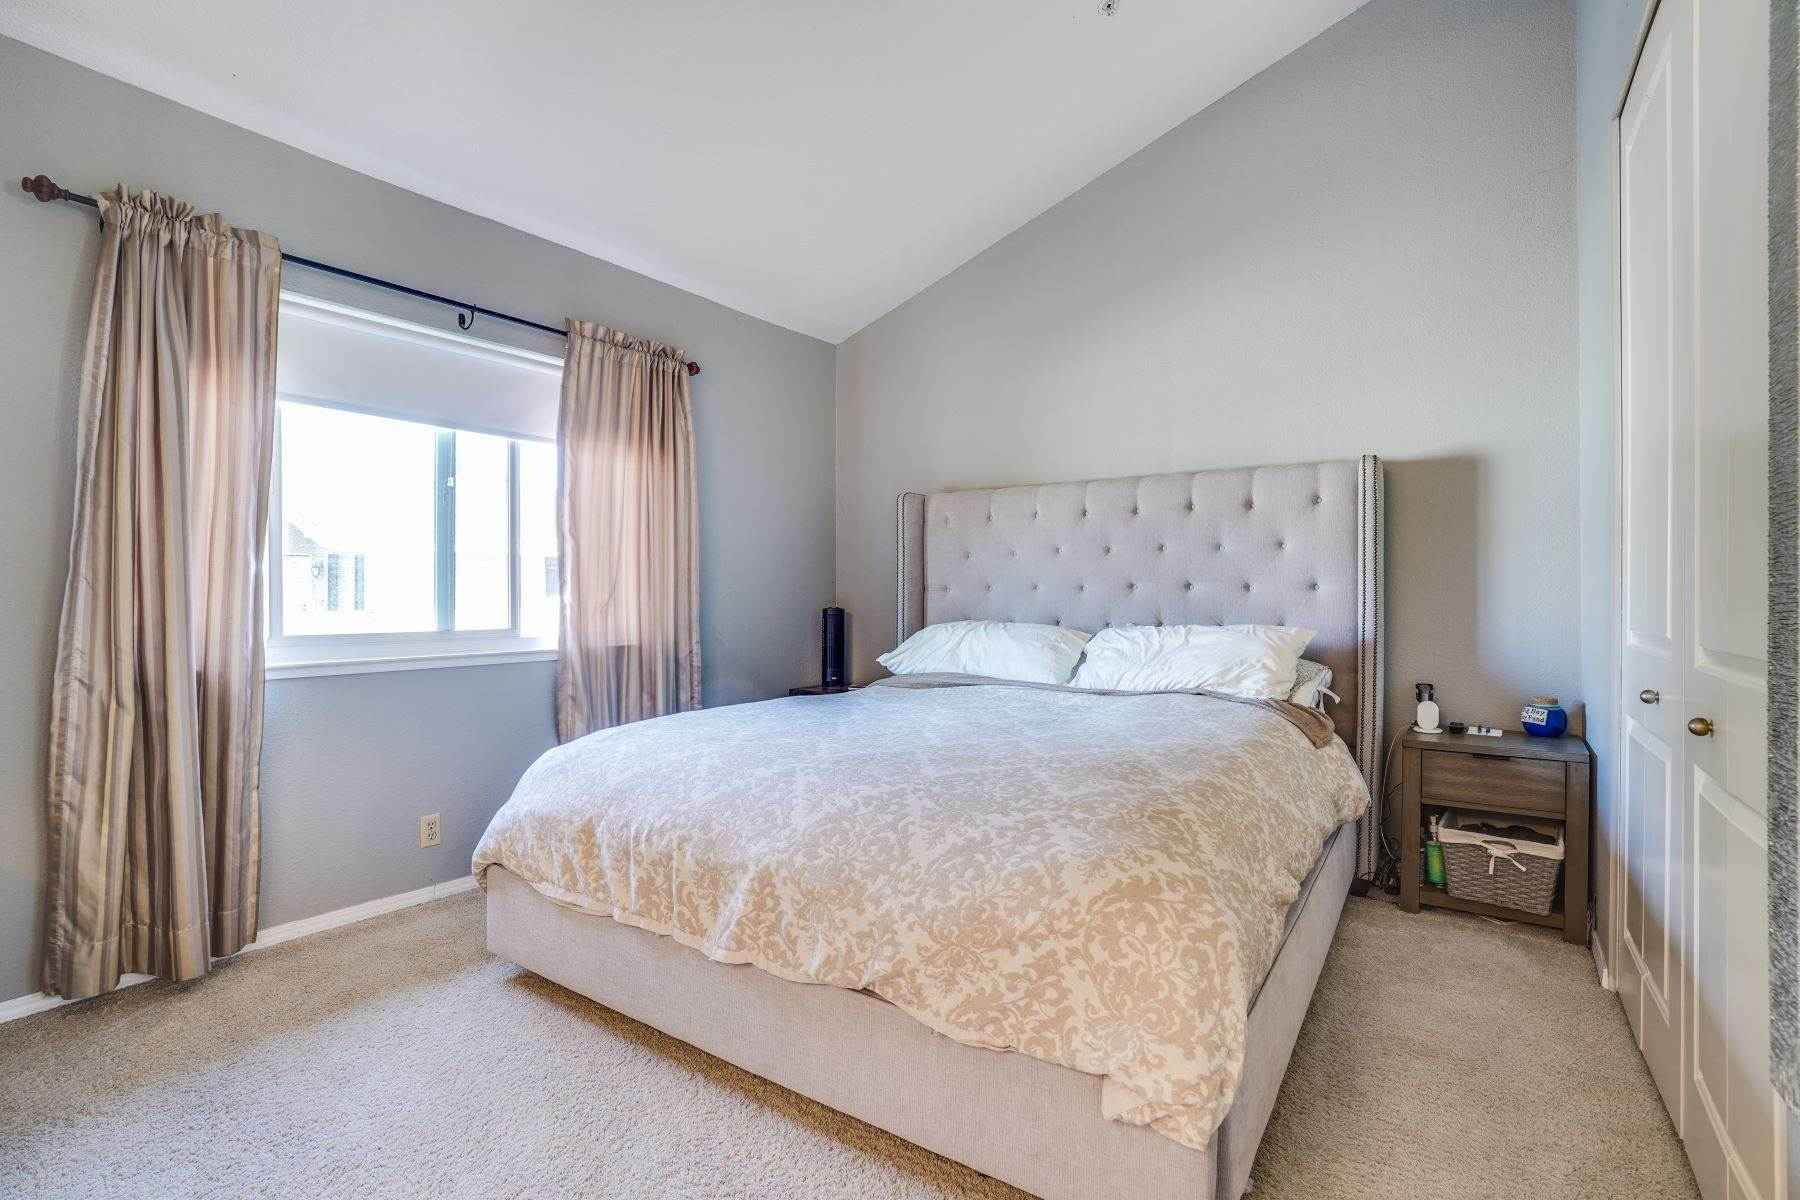 14. townhouses for Sale at Contemporary Townhome with Excellent Mid-Peninsula Location 126 Albacore Lane Foster City, California 94404 United States